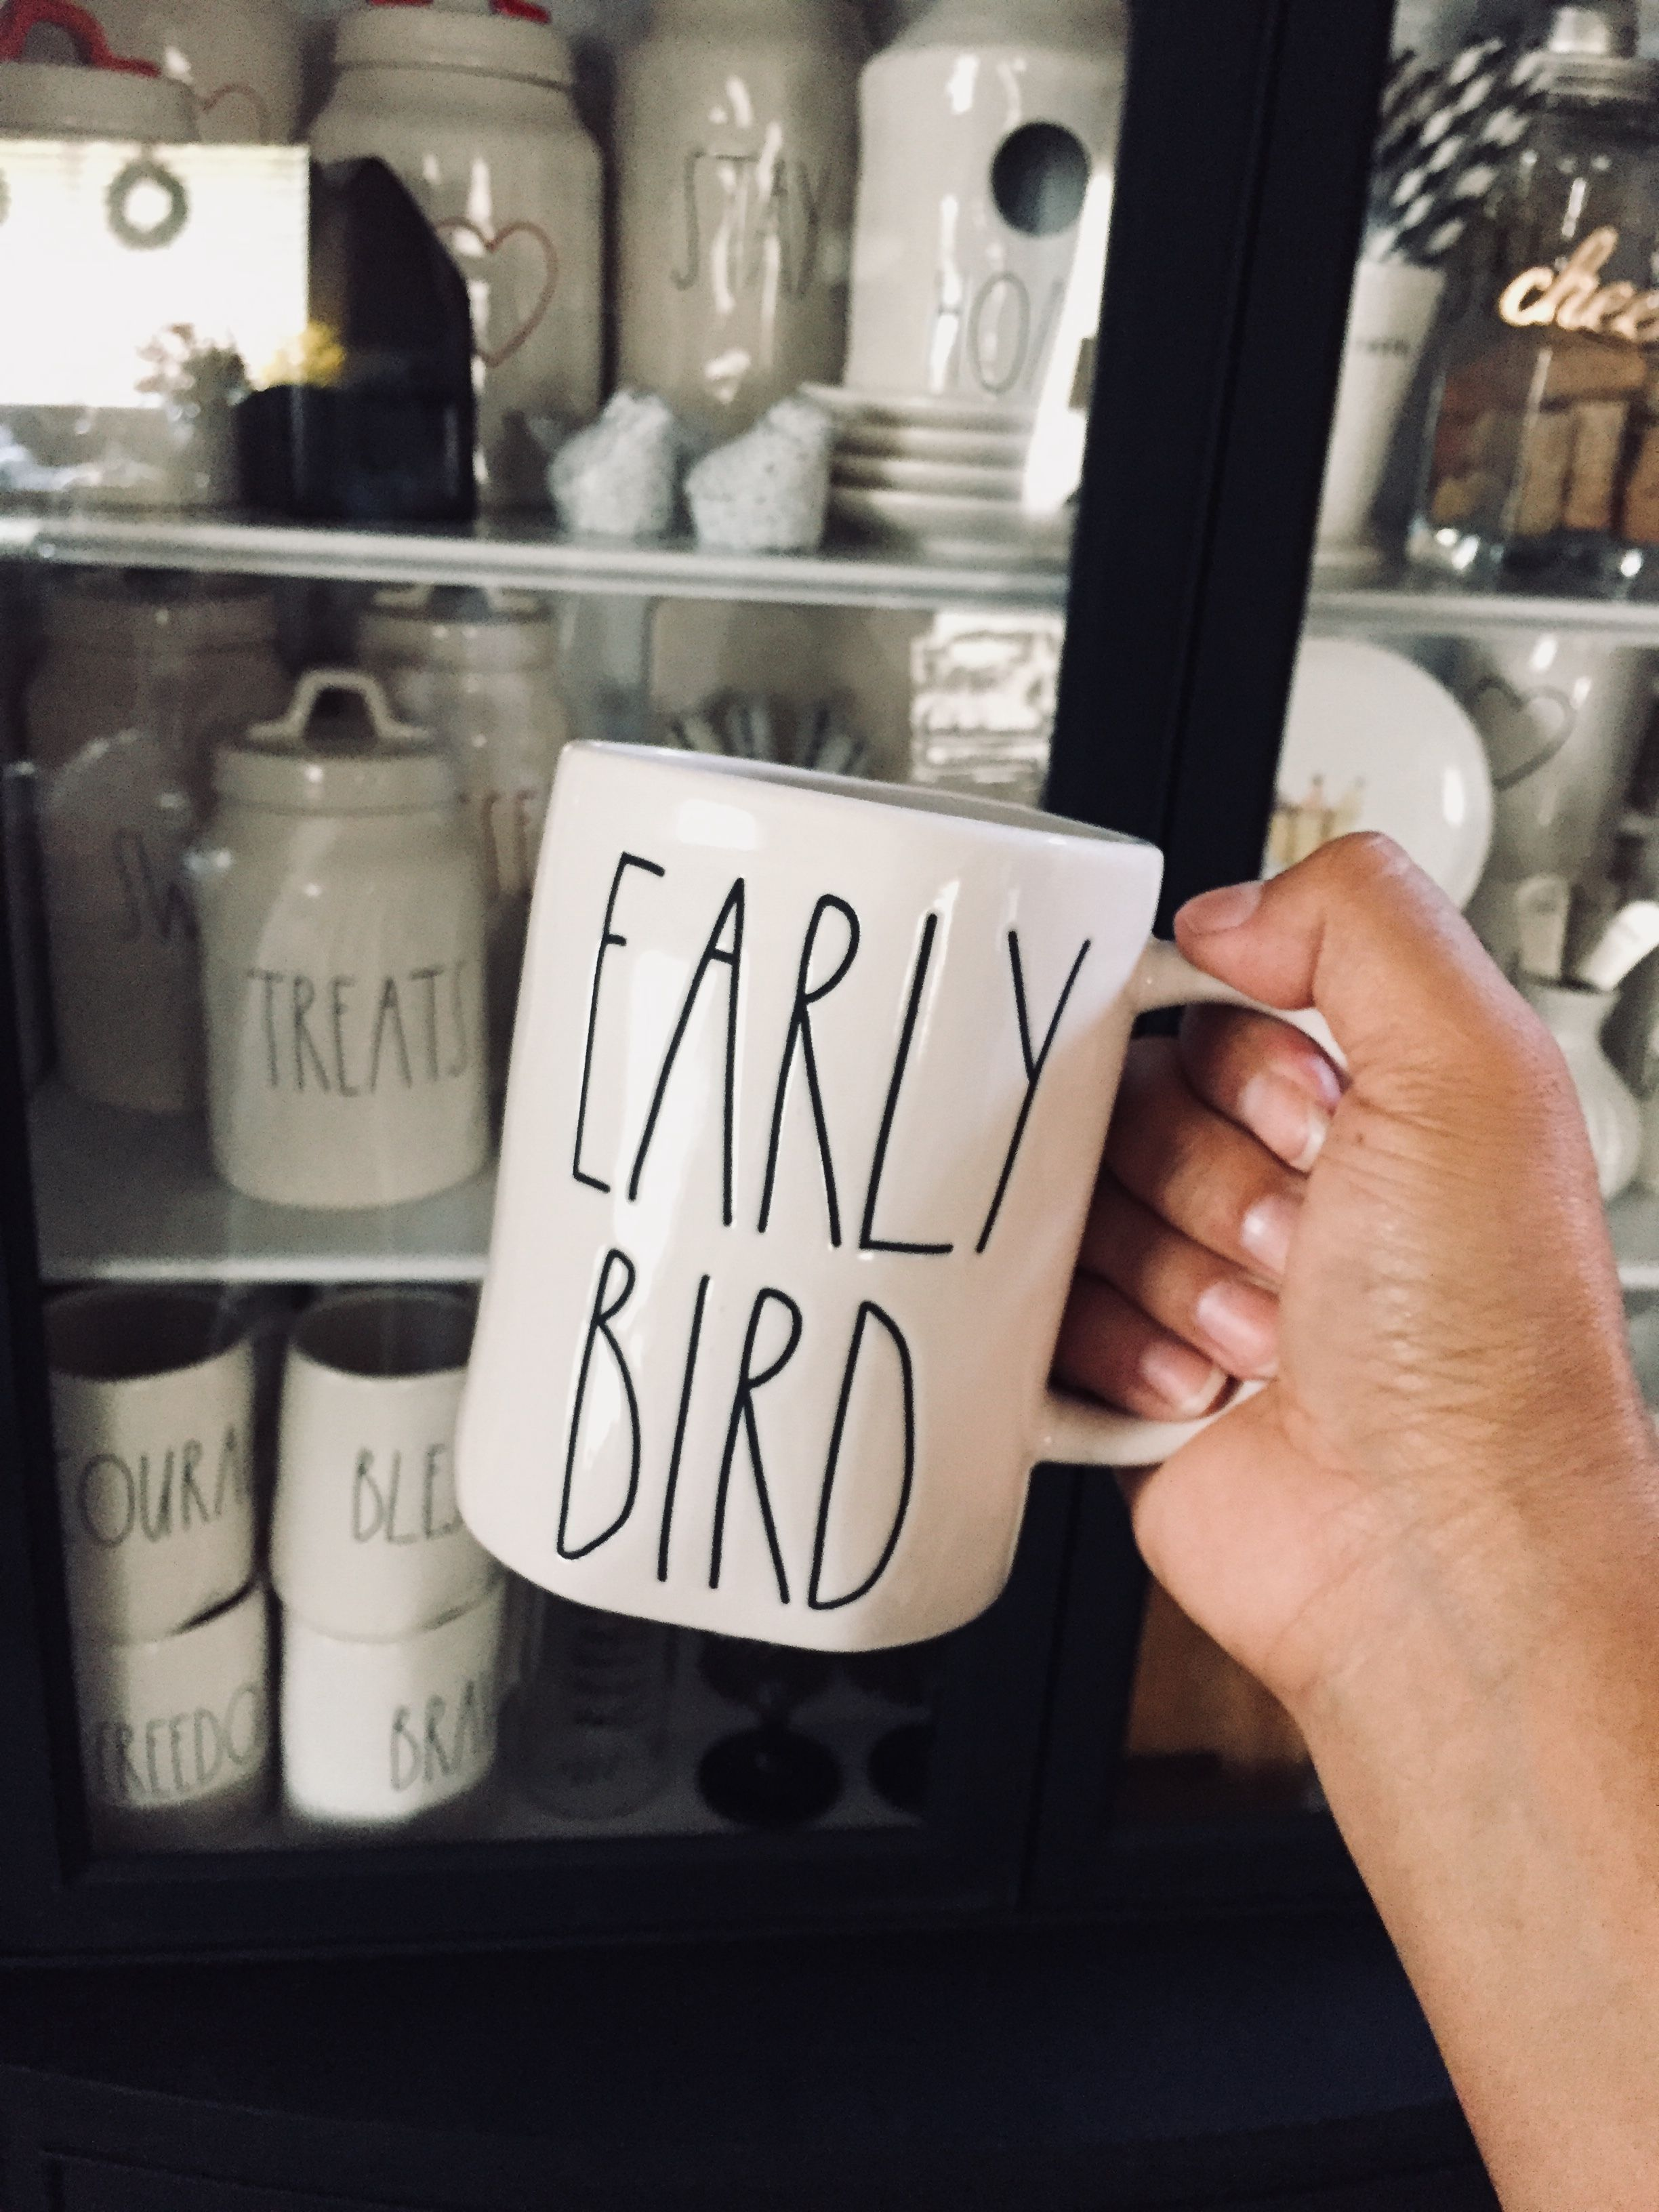 Are an early bird or an night owl? Instagram iwat.tobe